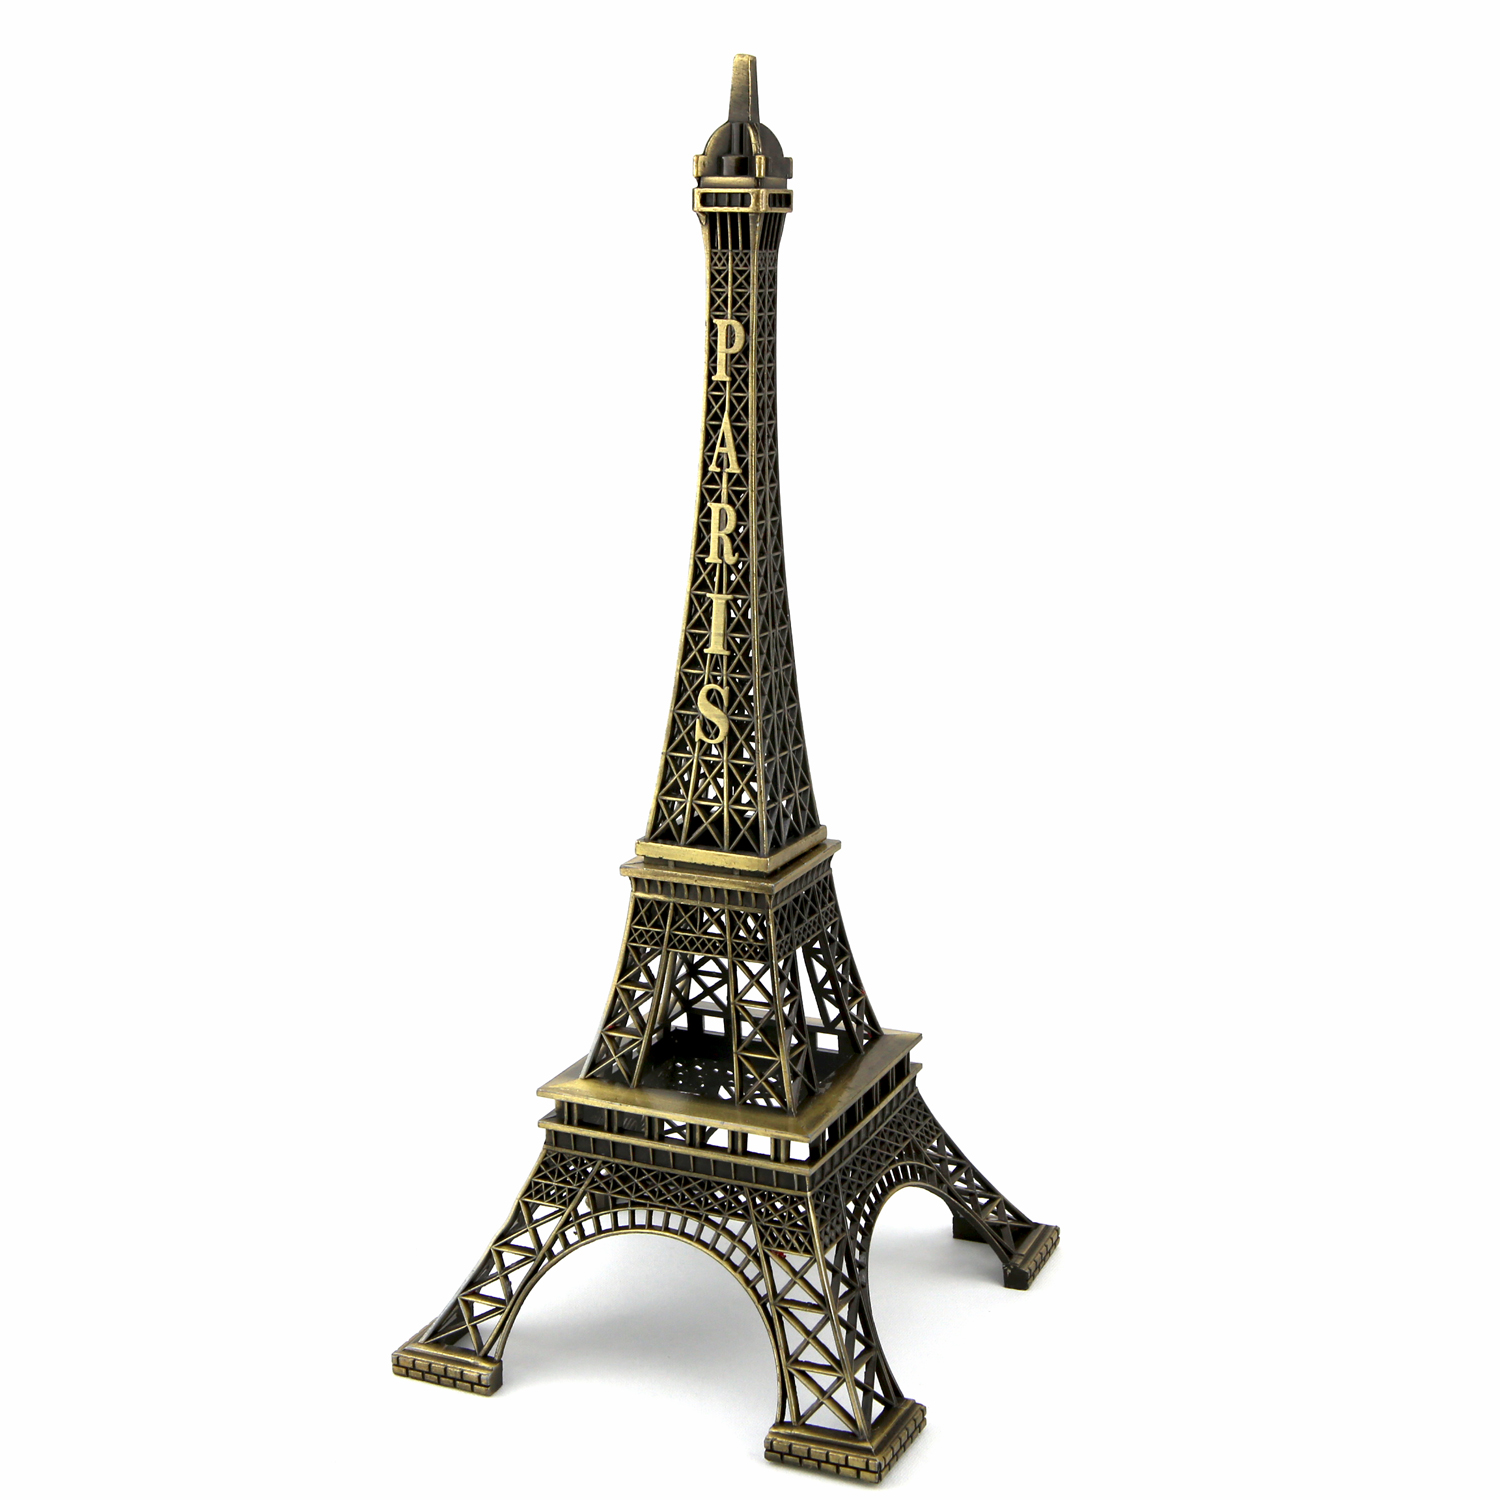 Lot Tour eiffel souvenir de paris bronze 19 cm TE19B